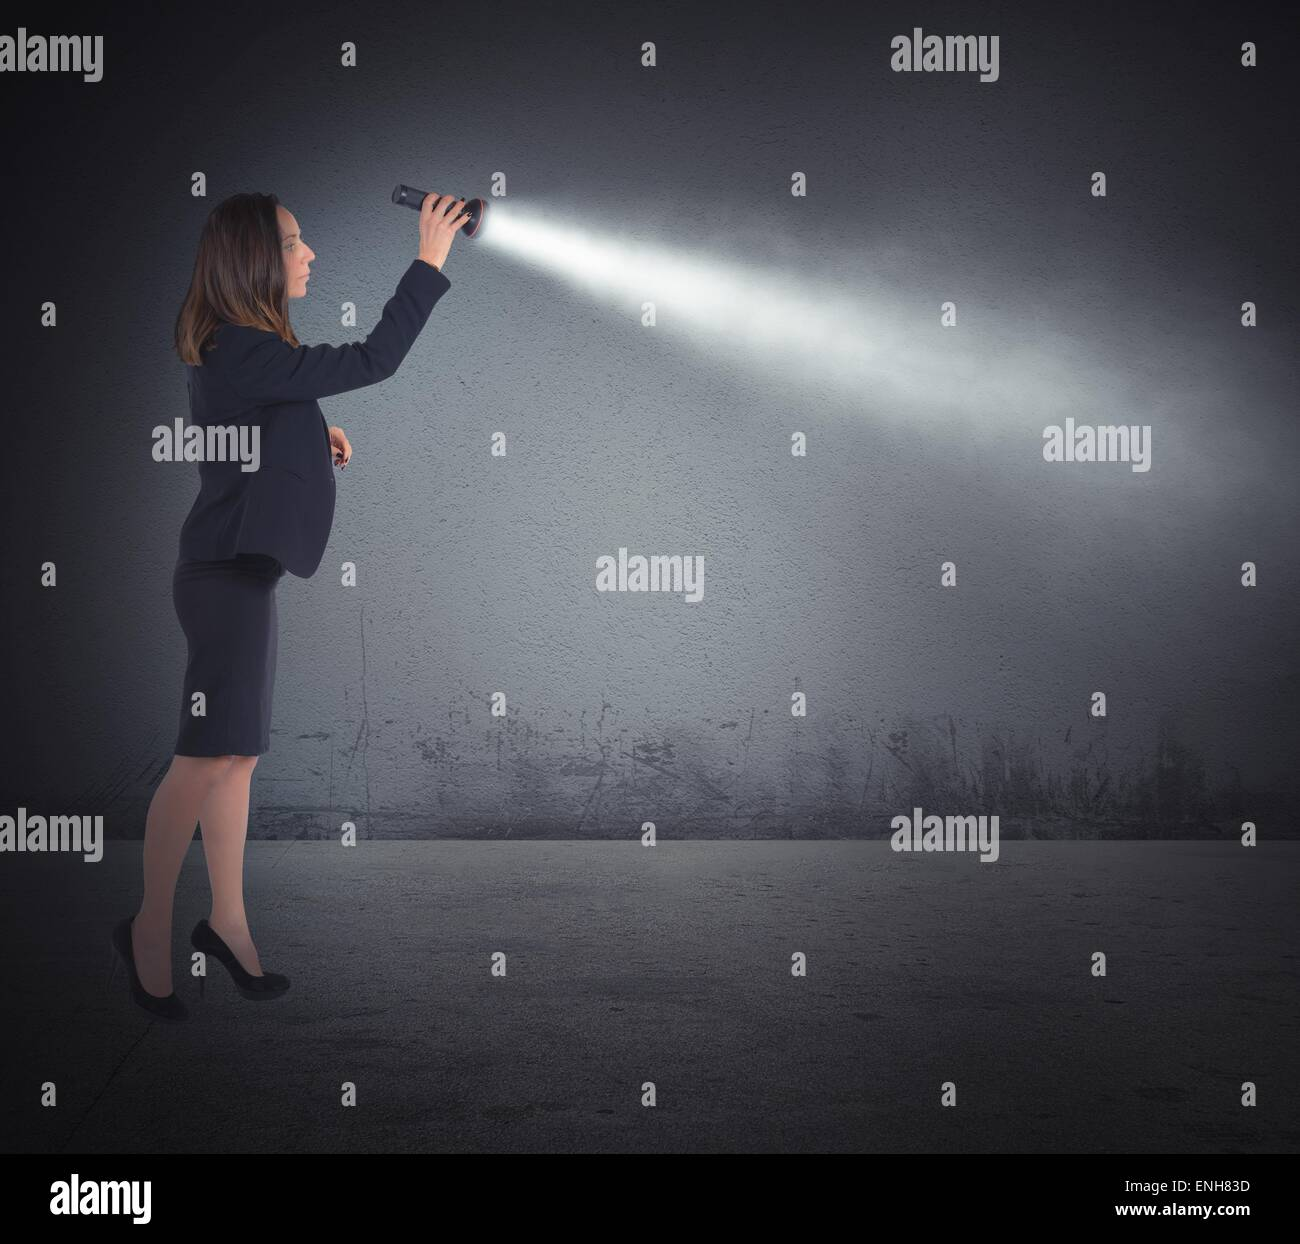 Torch lights to search - Stock Image